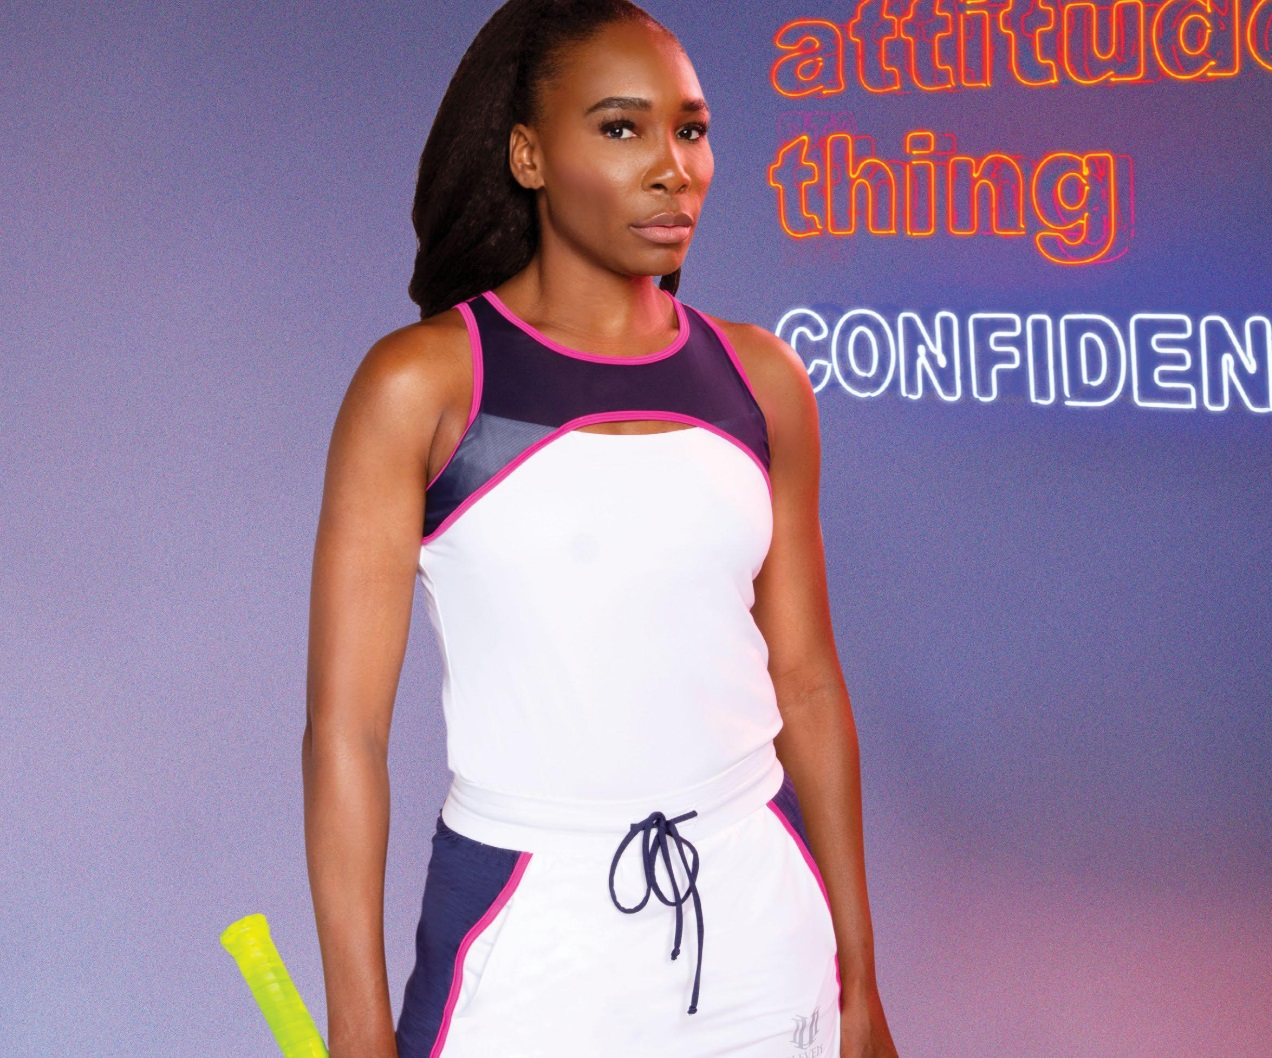 Venus William Outfit for the Australian Open 2020